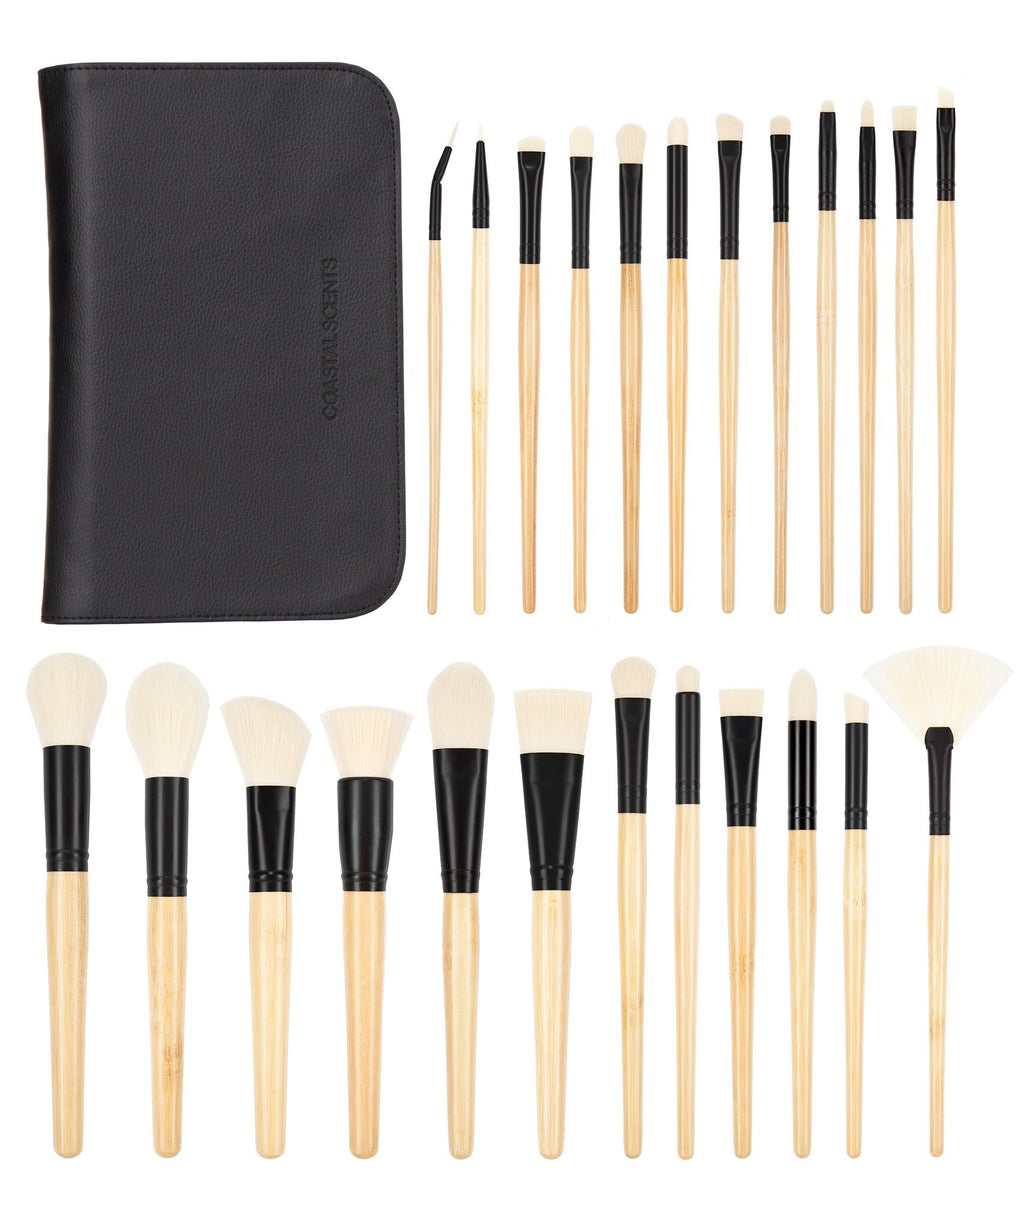 COASTAL SCENTS 24 Piece Elite Brush Set